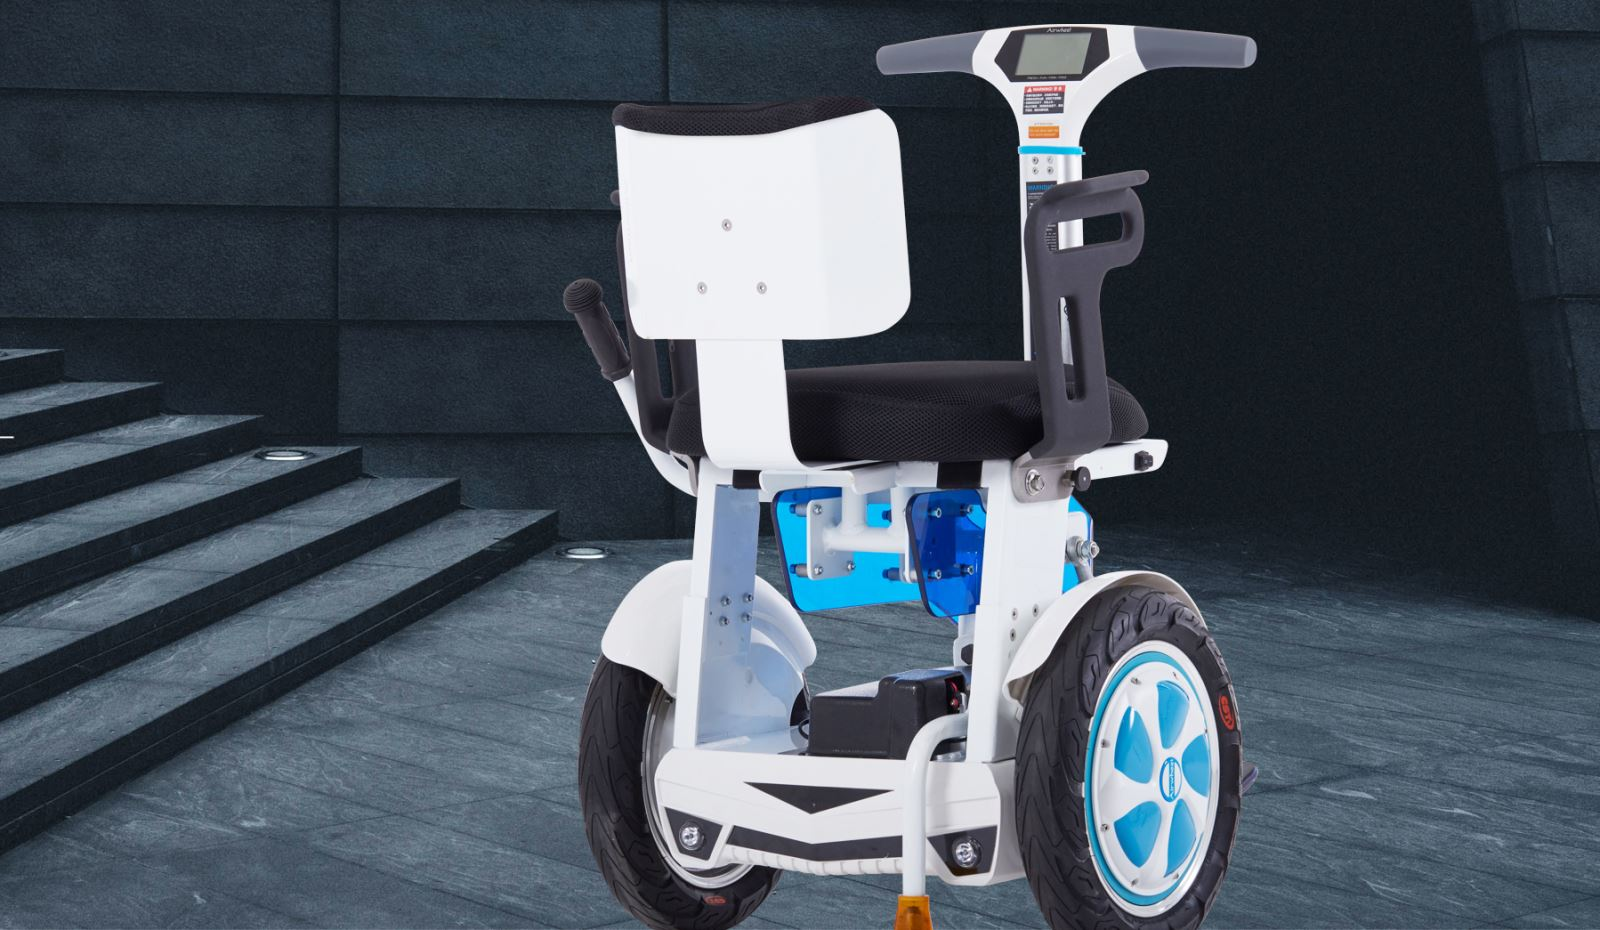 Airwheel A6T smart%20 self balancing %20wheelchair(5).